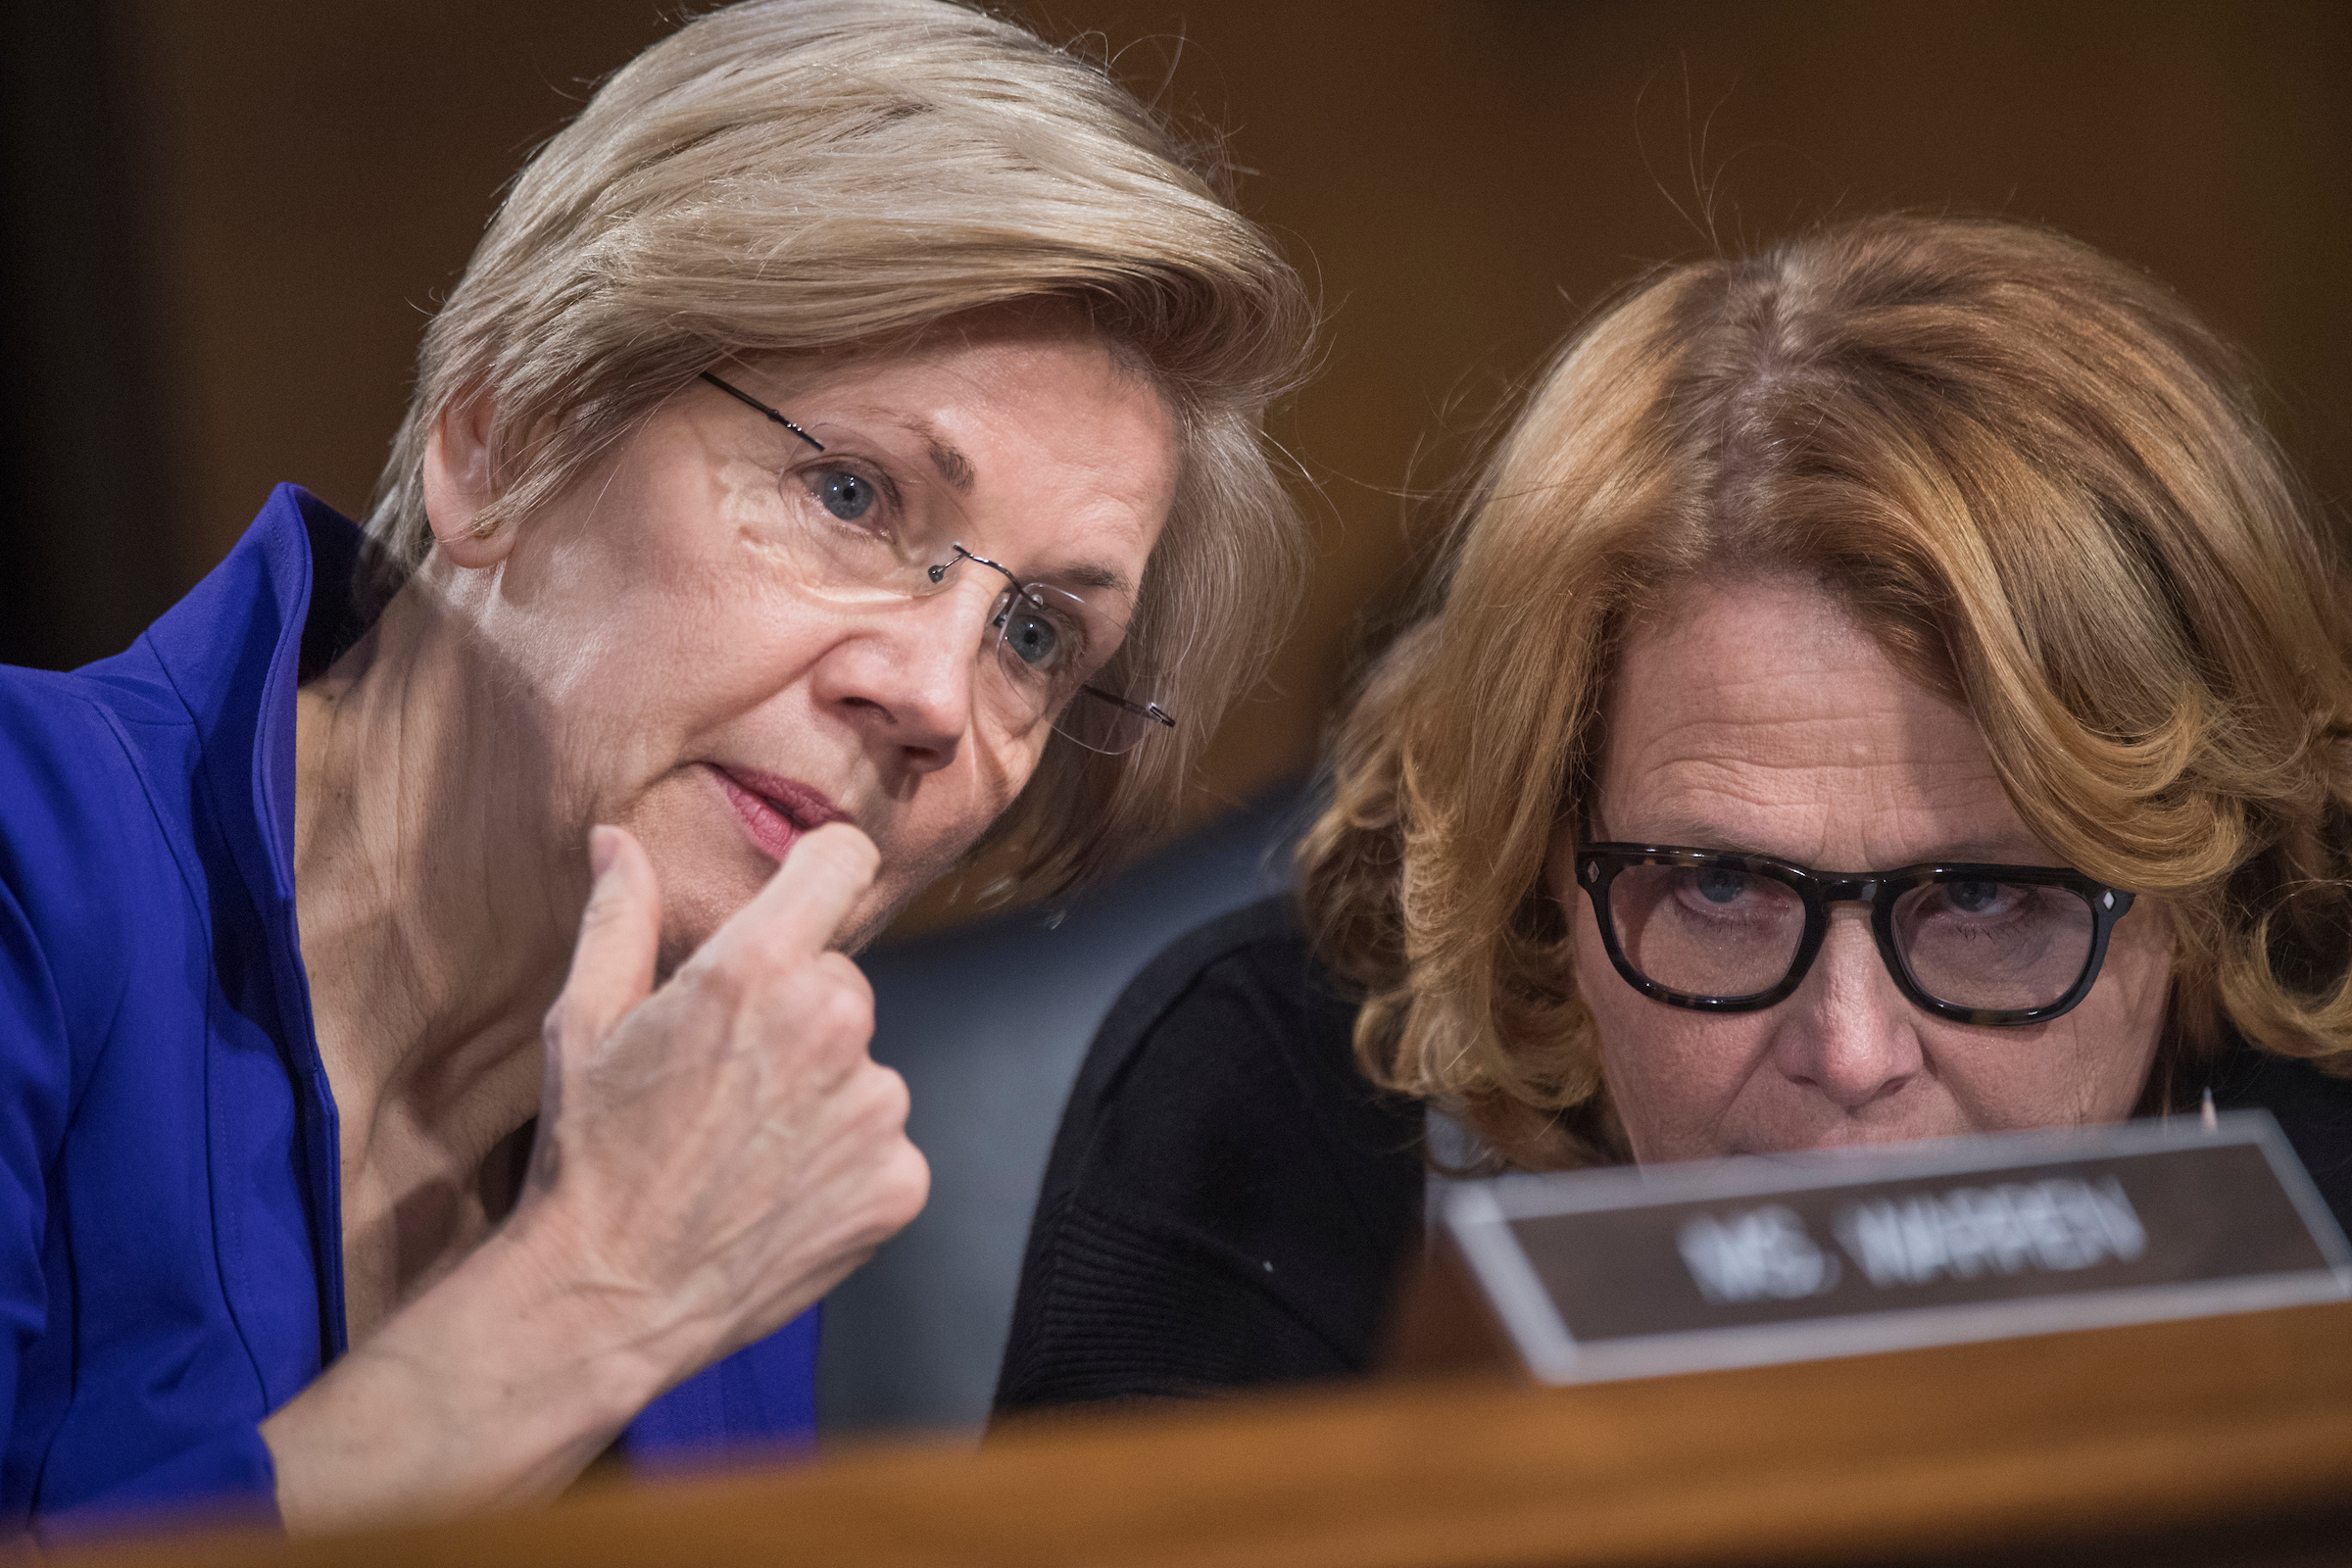 """UNITED STATES - FEBRUARY 14: Sens. Elizabeth Warren, D-Mass., left, and Heidi Heitkamp, D-N.D., talk during a Senate Banking, Housing, and Urban Affairs Committee hearing in Dirksen Building titled """"The Semiannual Monetary Policy Report to the Congress,"""" featuring testimony by Fed Chairwoman Janet Yellen, February 14, 2017. (Photo By Tom Williams/CQ Roll Call)"""